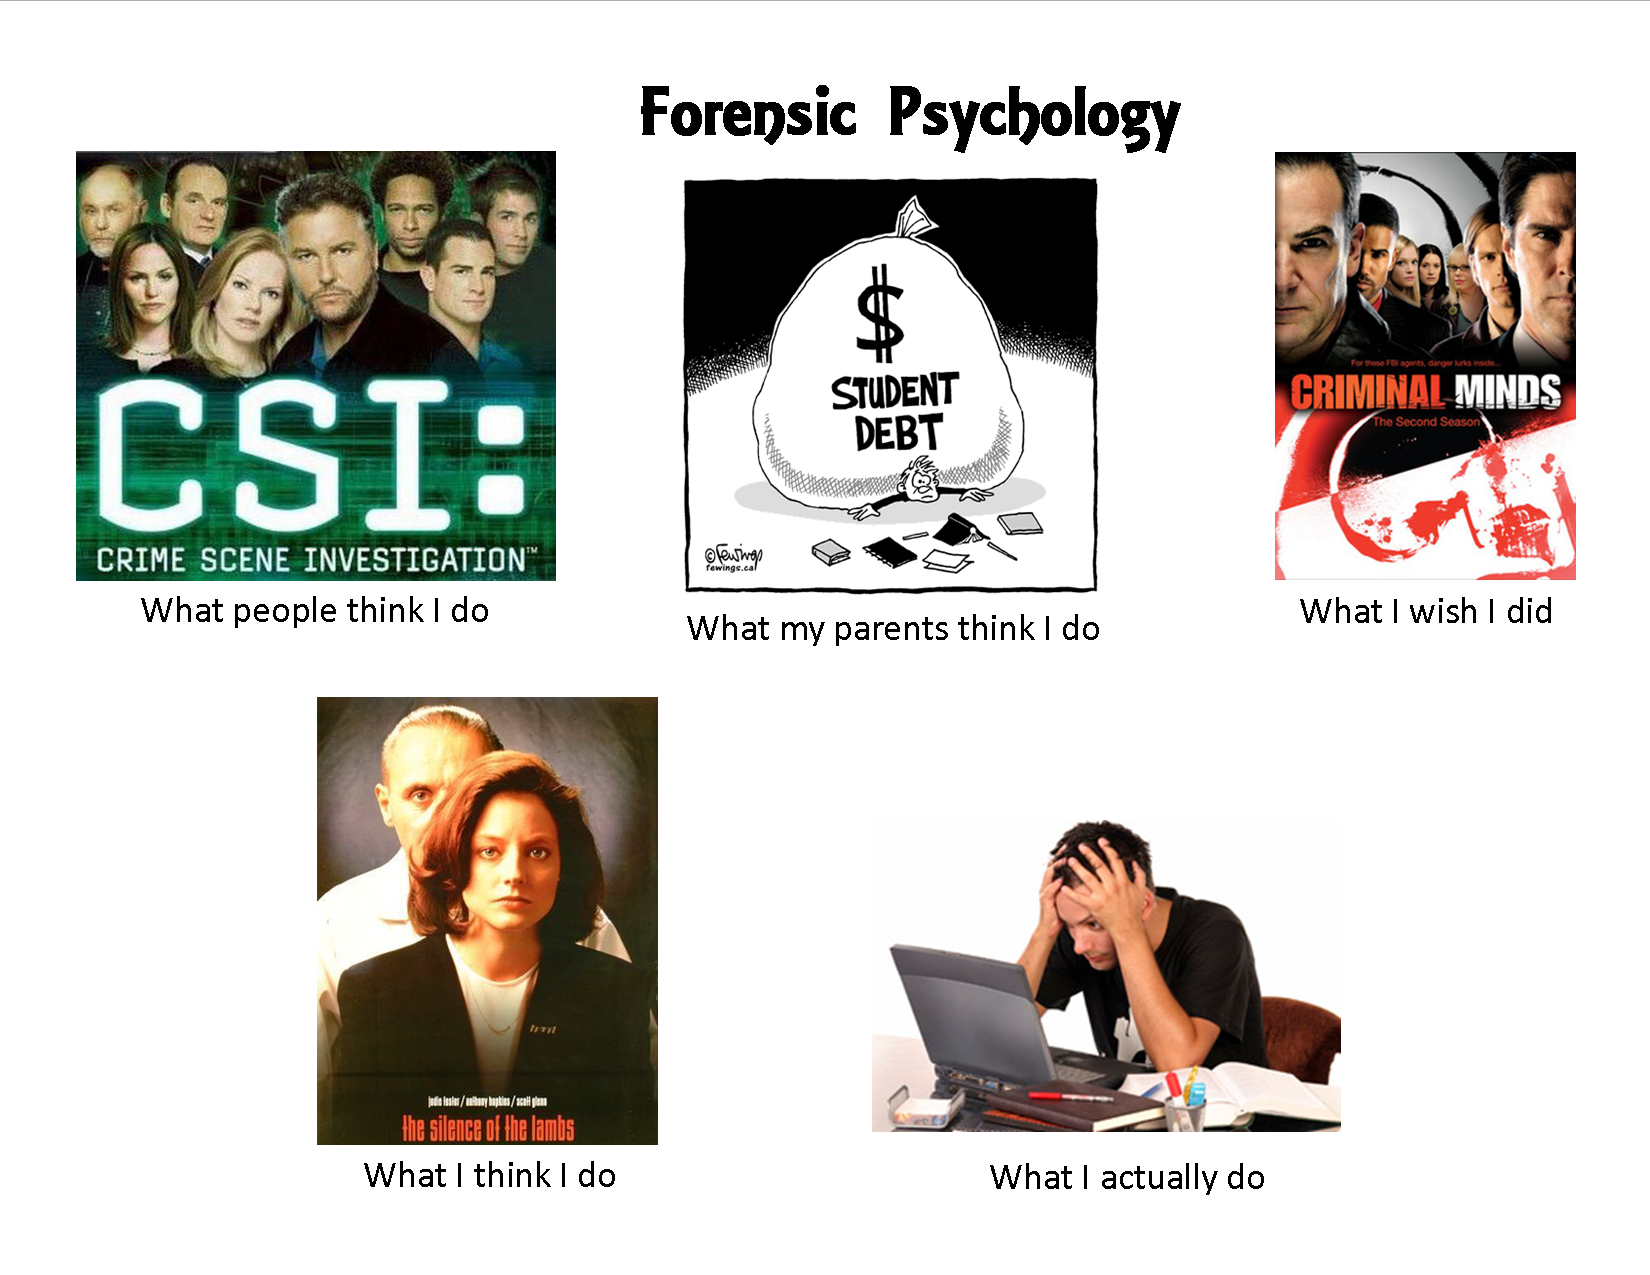 Forensic Psychologist Quotes Quotesgram. Plumbing Hot Water Heater Singapore Car Price. Dish Network Rochester Mn Hospice Social Work. Pine Tree Stump Removal Finance Kpi Dashboard. Prepaid Cards Get Paid Early. Best Breast Implants Before And After. Olde Naples Self Storage Video Calls On Skype. Cheap Email Marketing Service. Online Magazine Advertisements